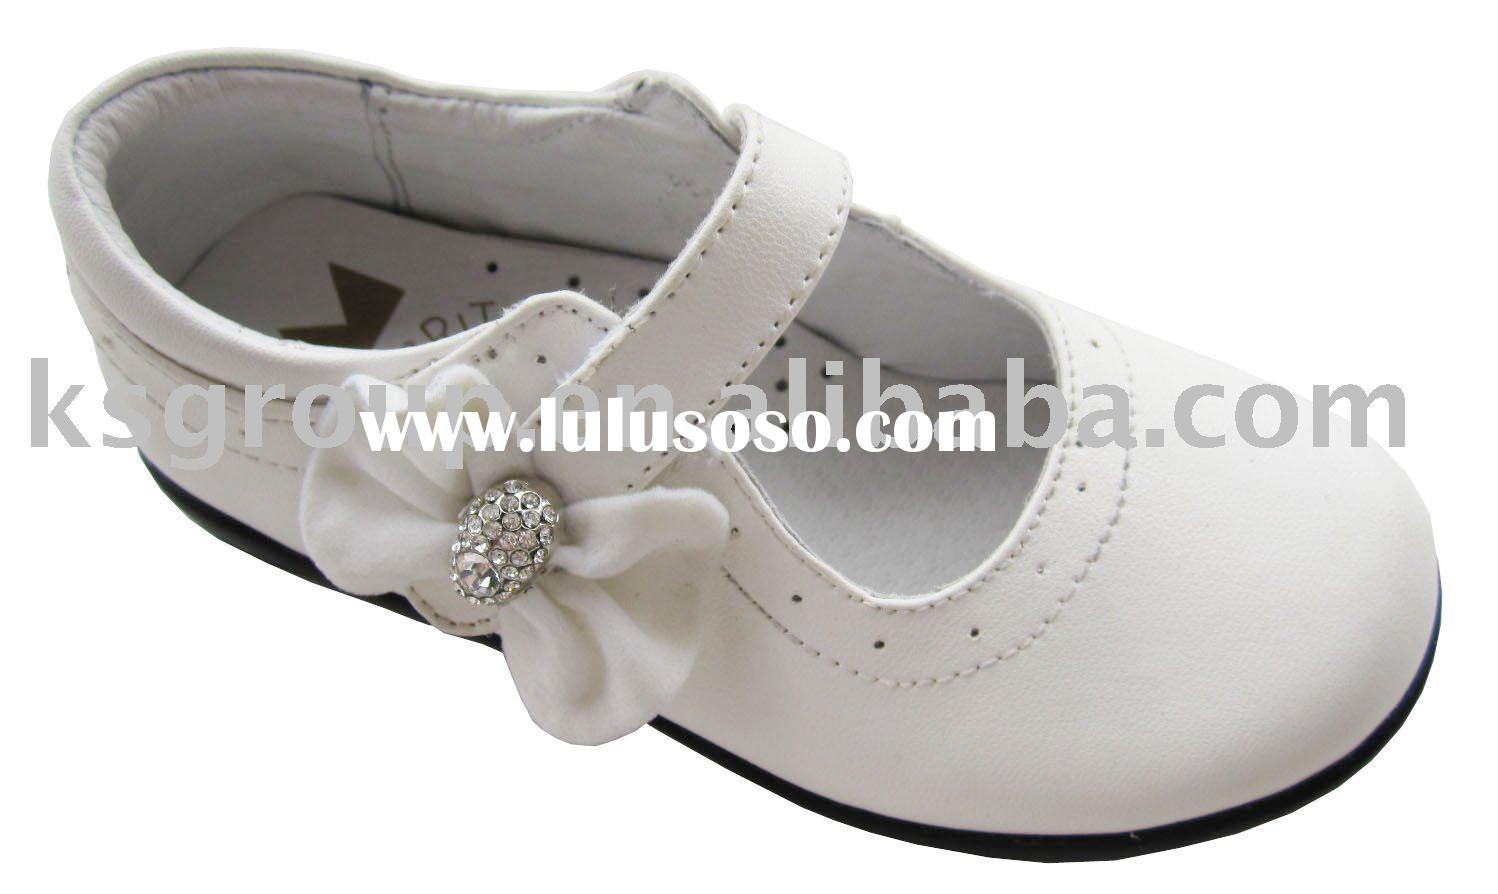 2011 New Style Girls' Children Dress shoes